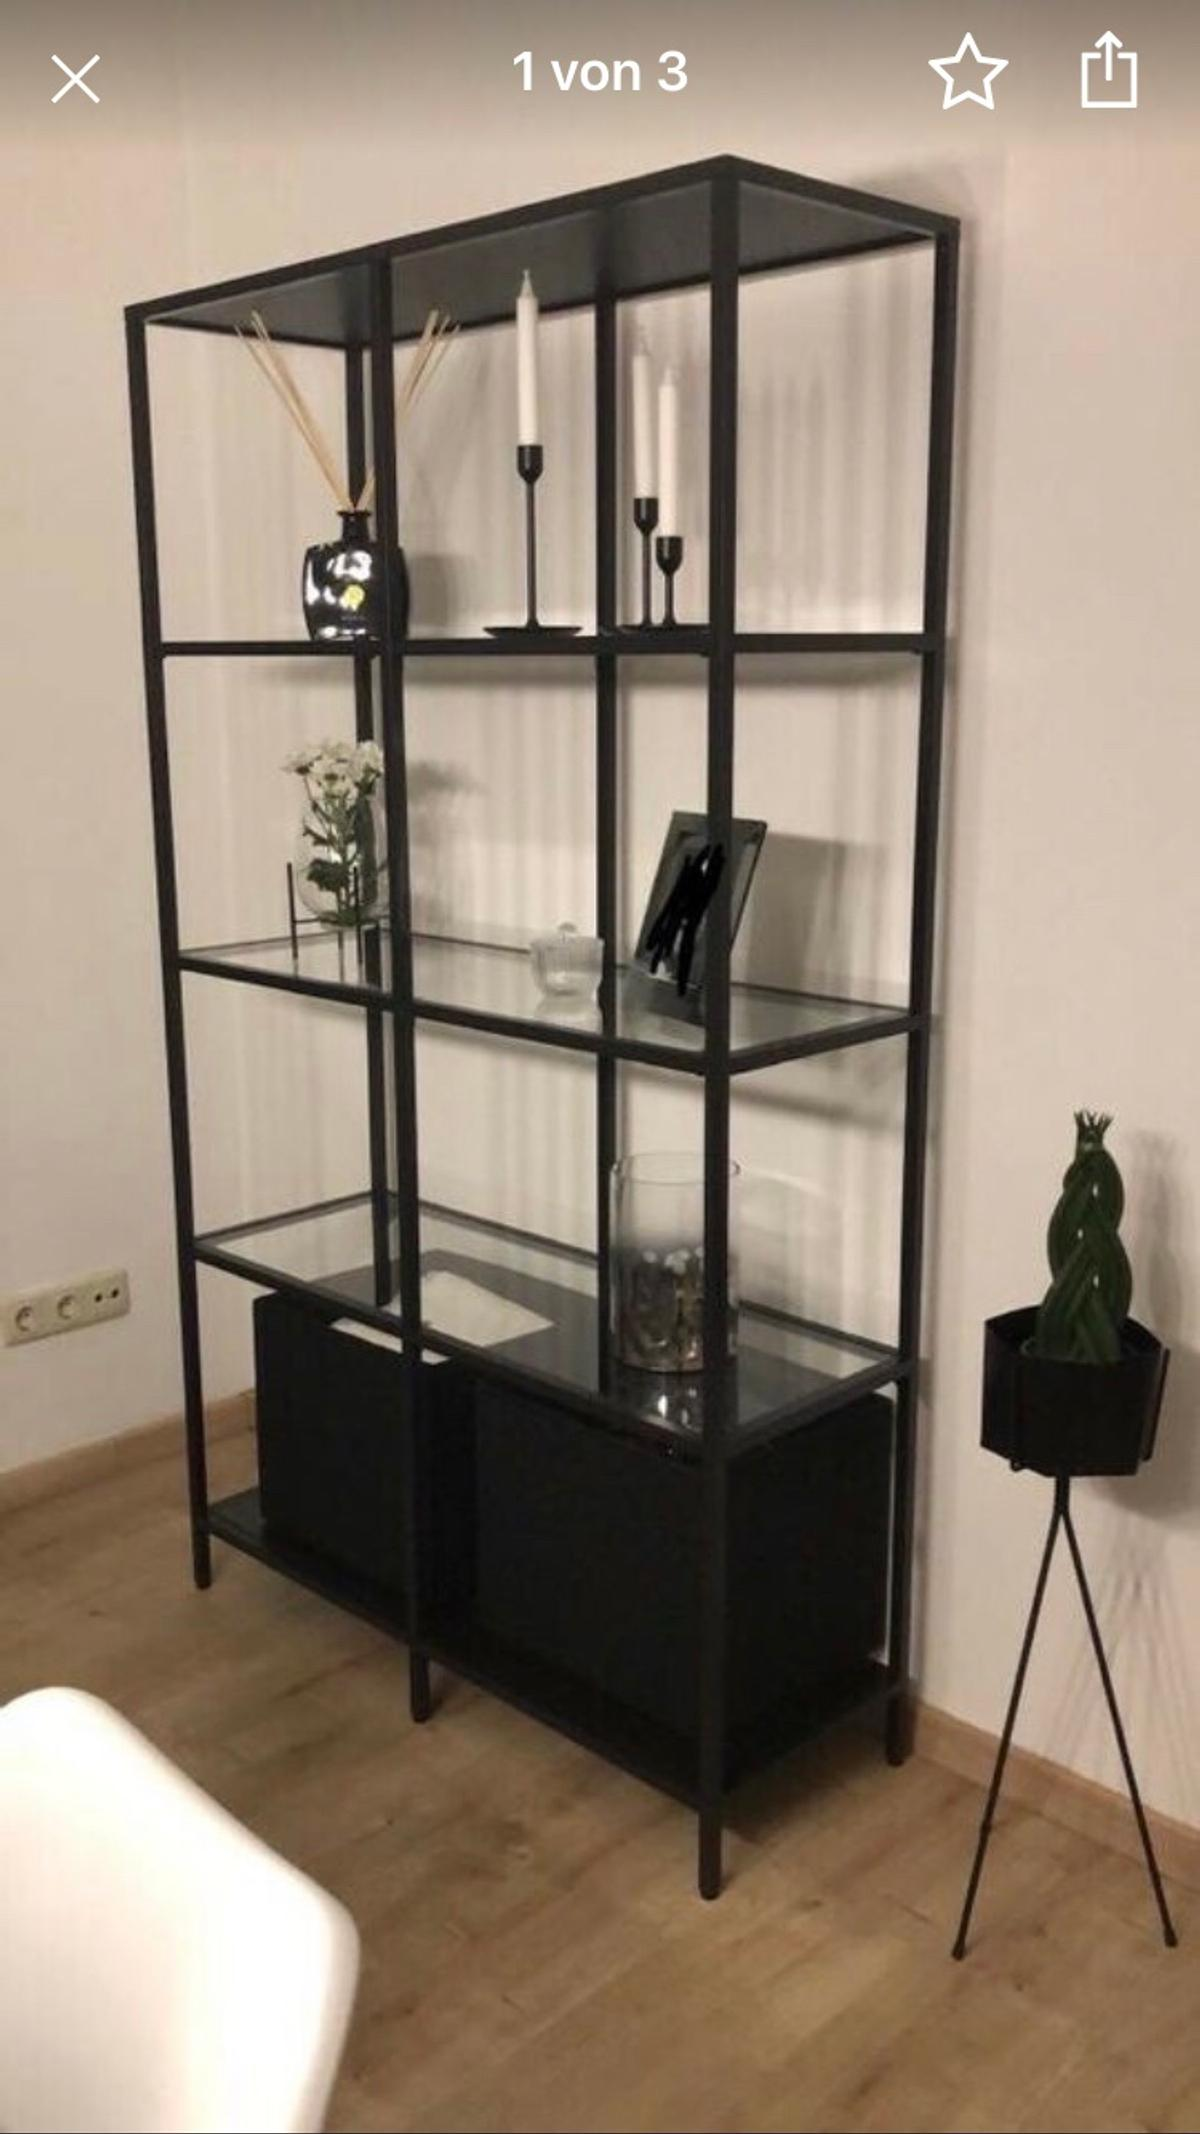 Ikea Schwarzbraun Regal In 85435 Erding For 55 00 For Sale Shpock